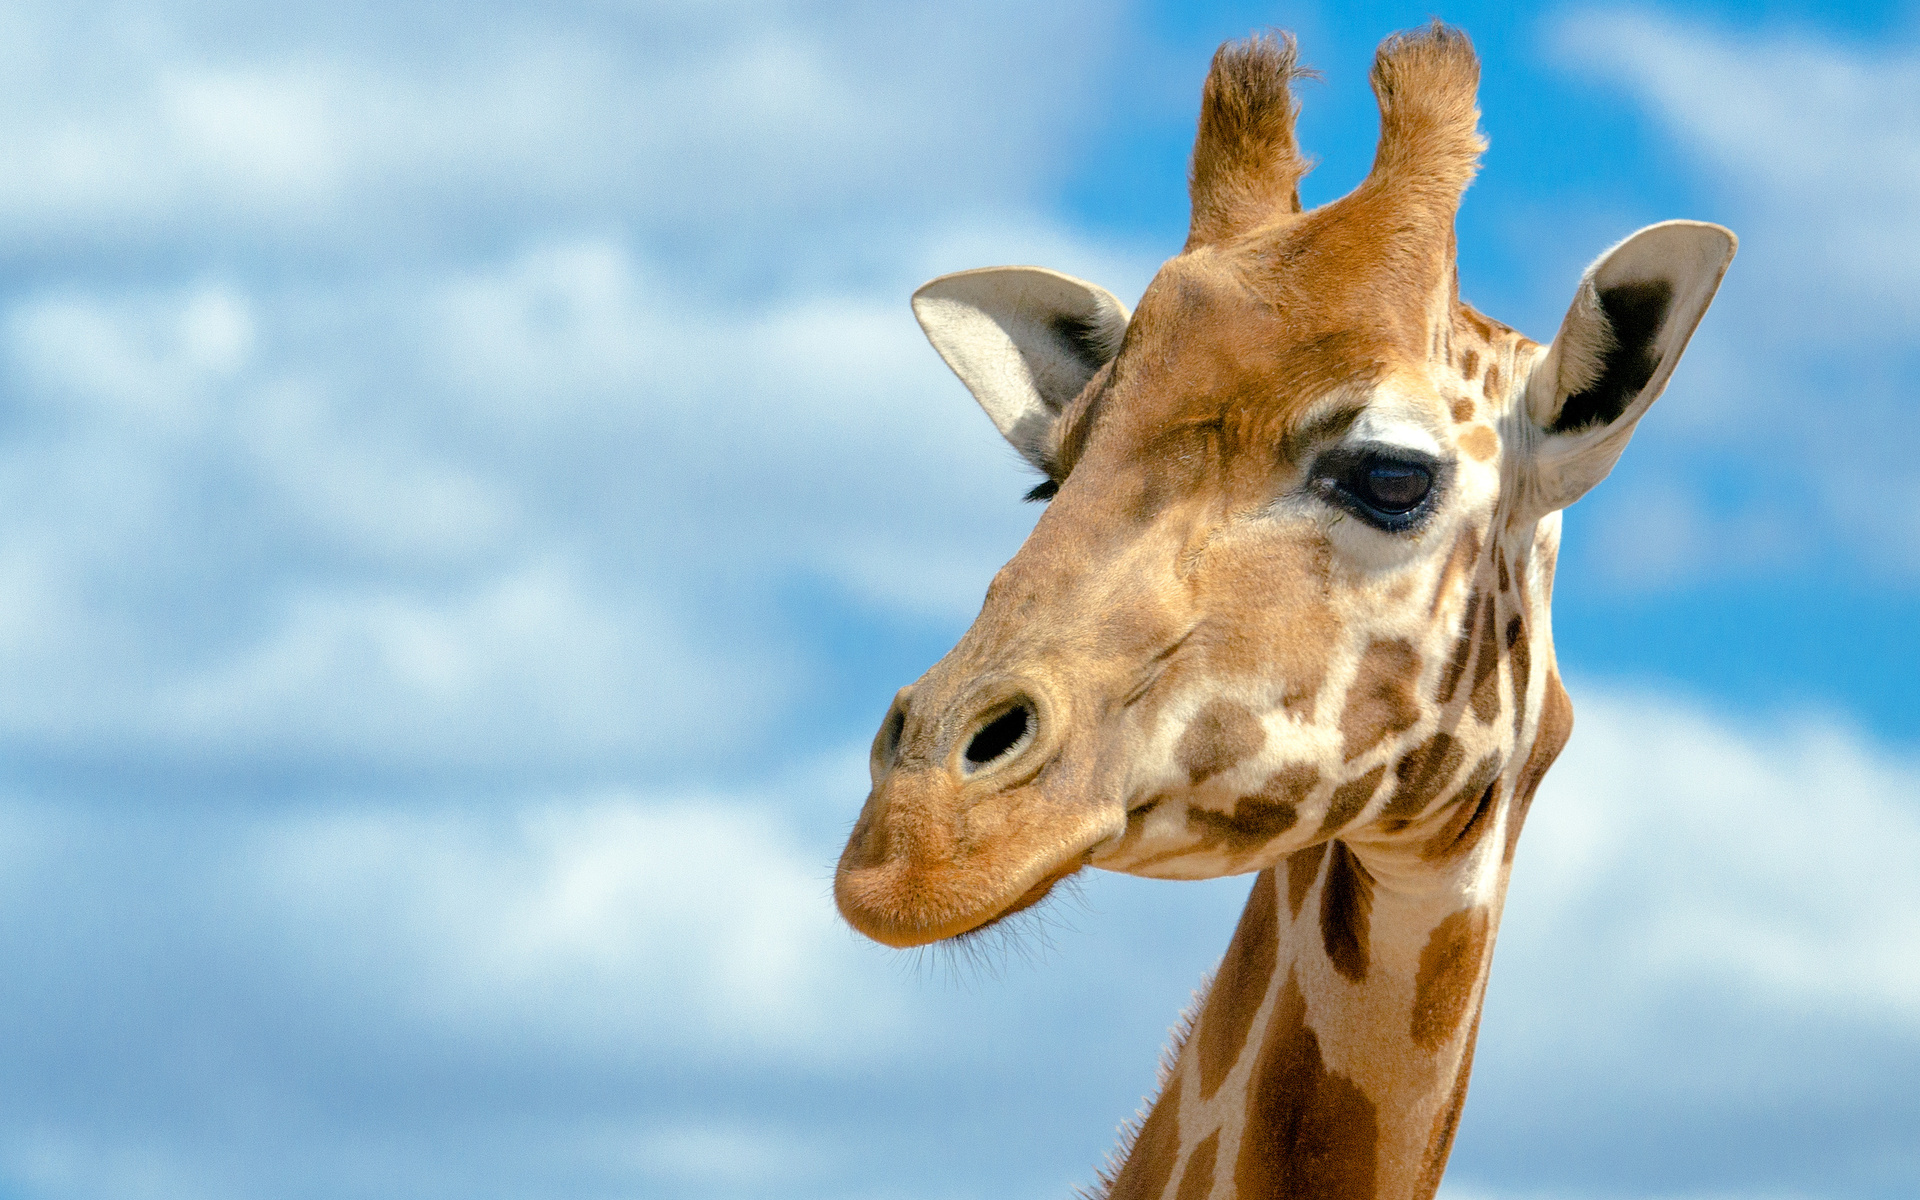 giraffe wallpapers hd pictures - photo #14